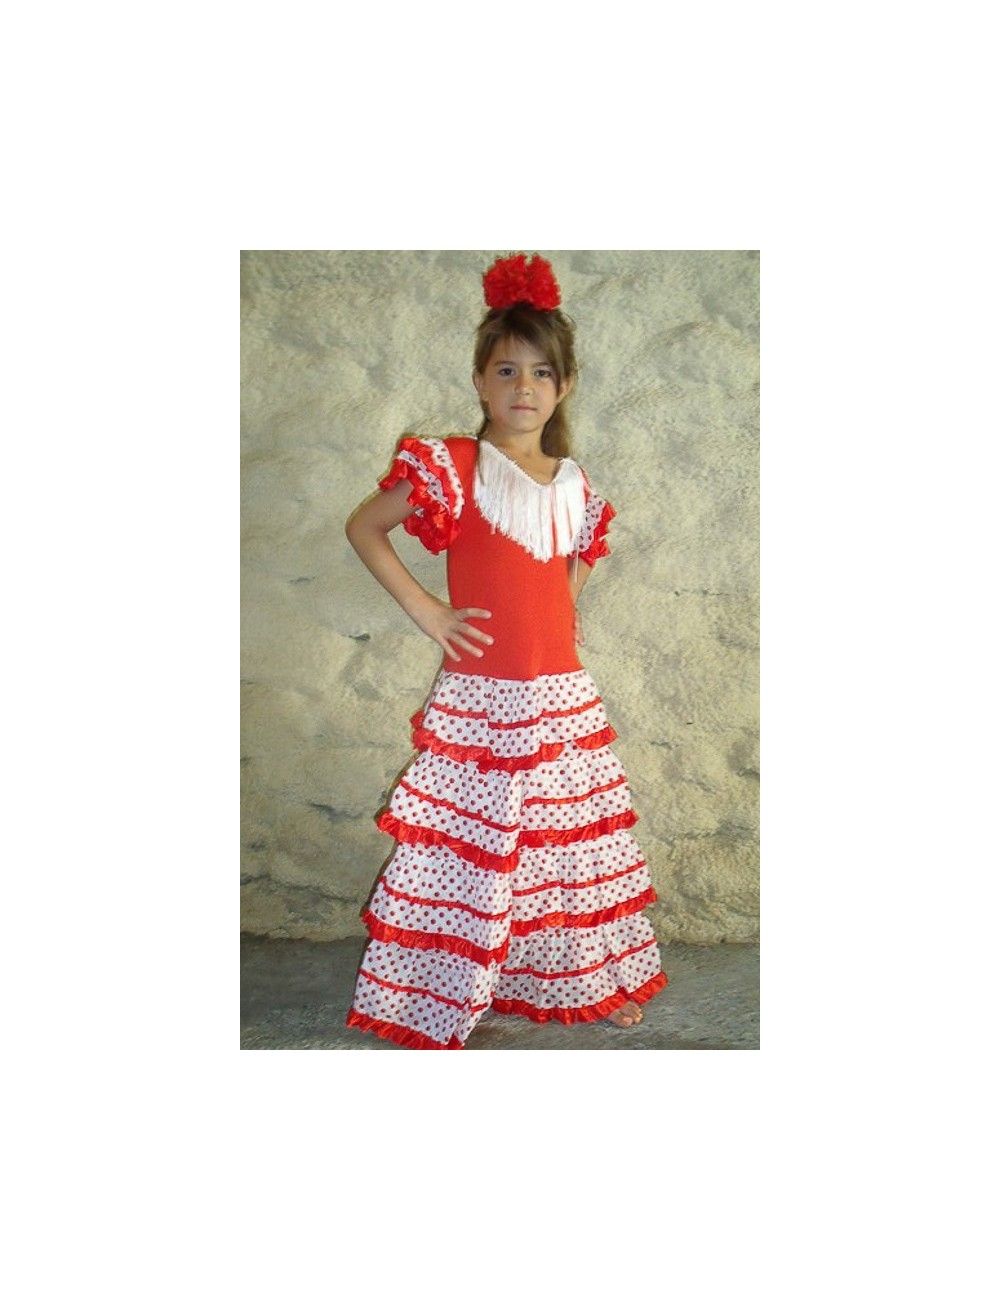 Déguisement robe de flamenco fille rouge pois blancs